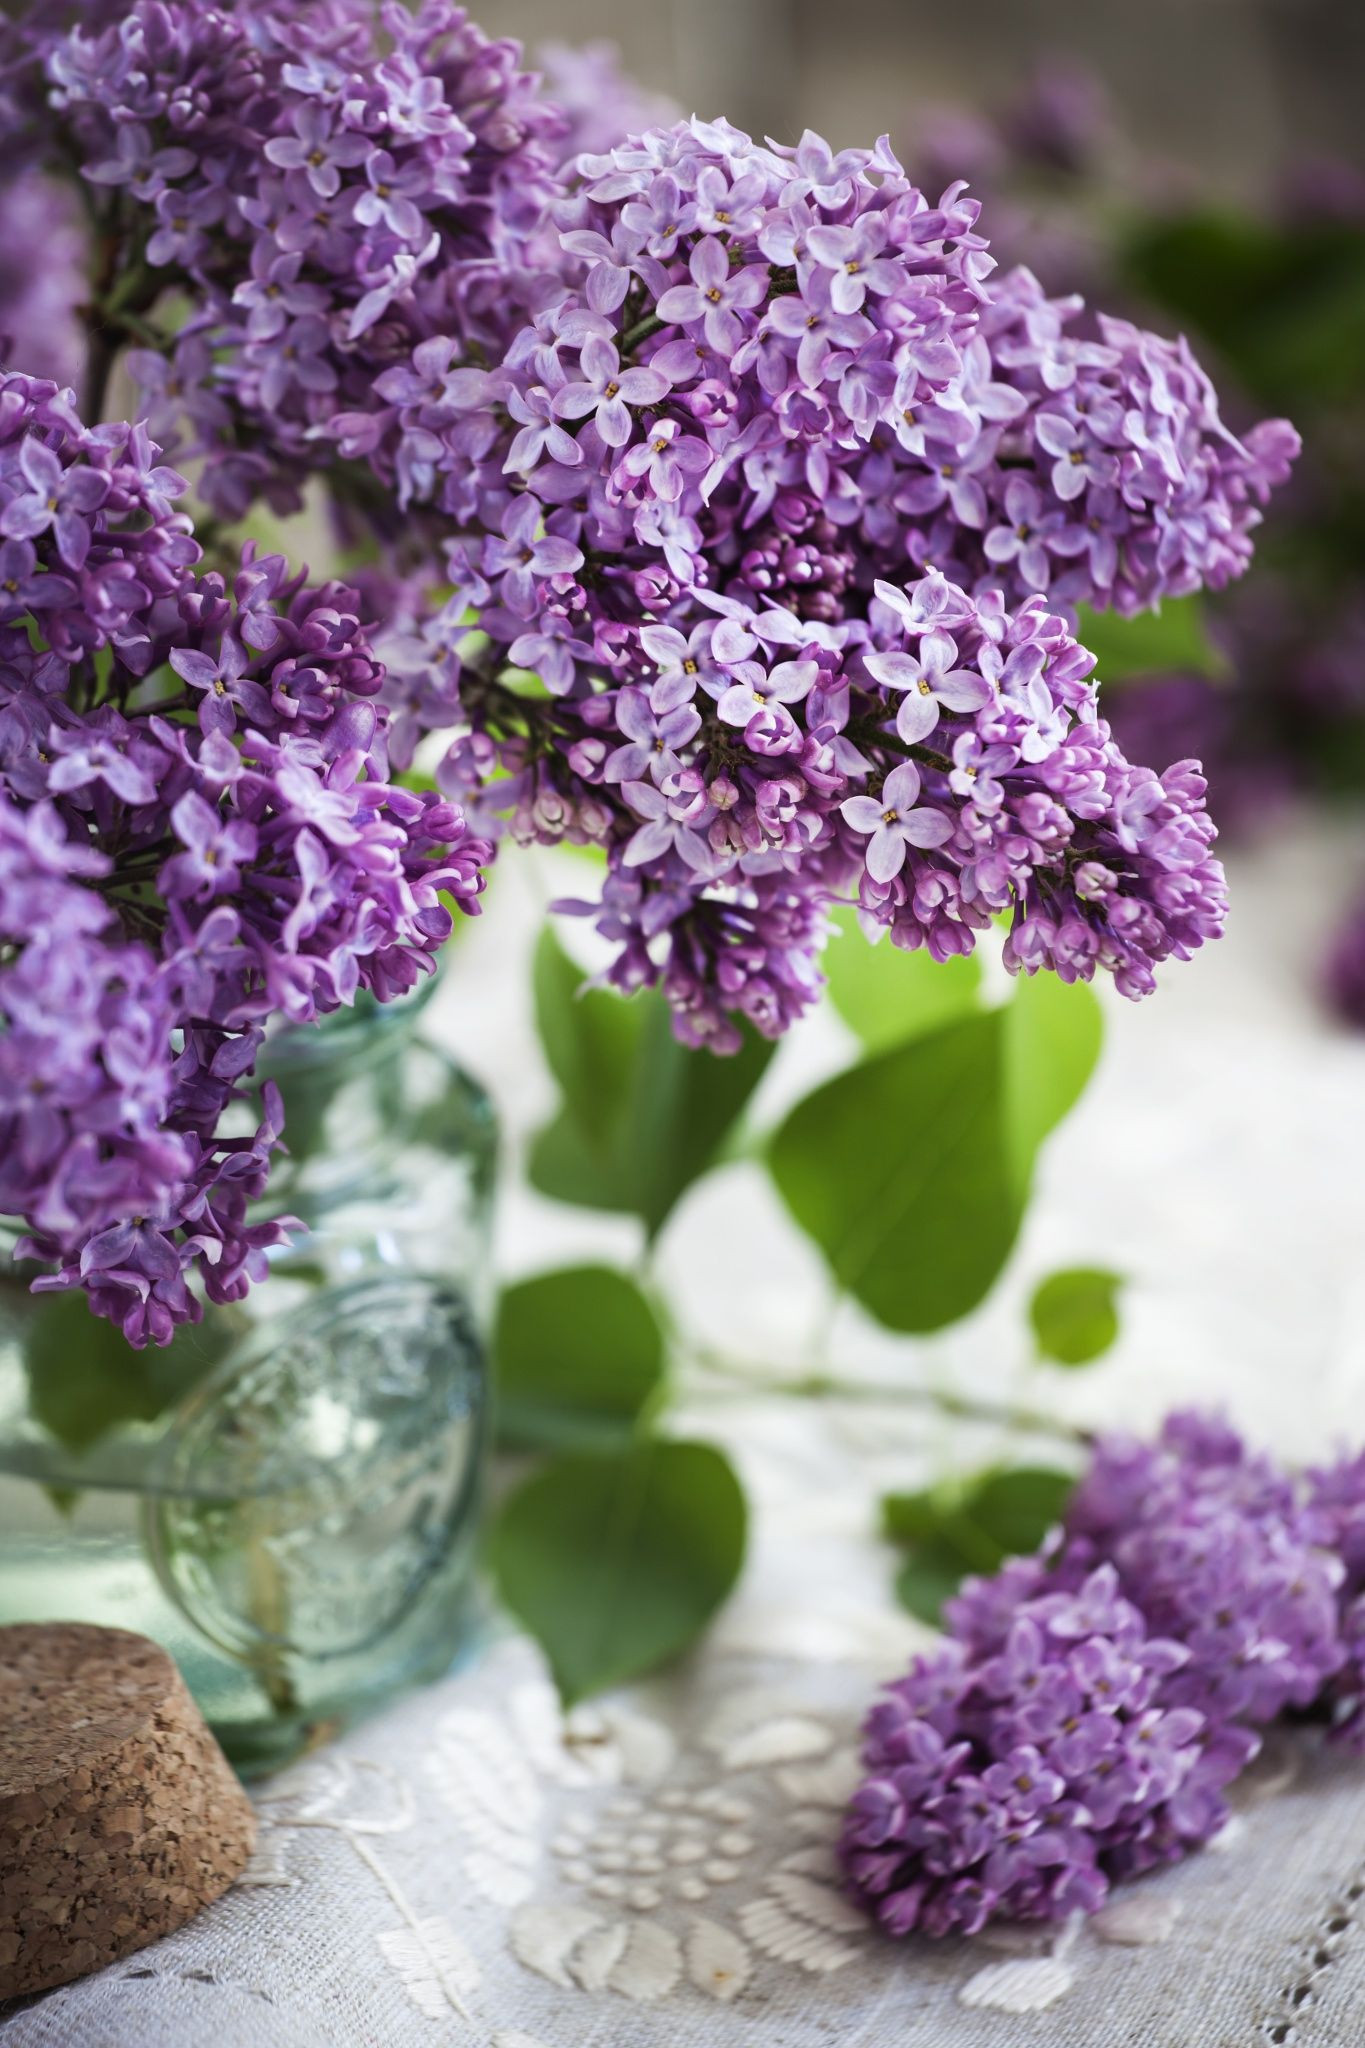 Lilac by Yulia Kotina on 500px